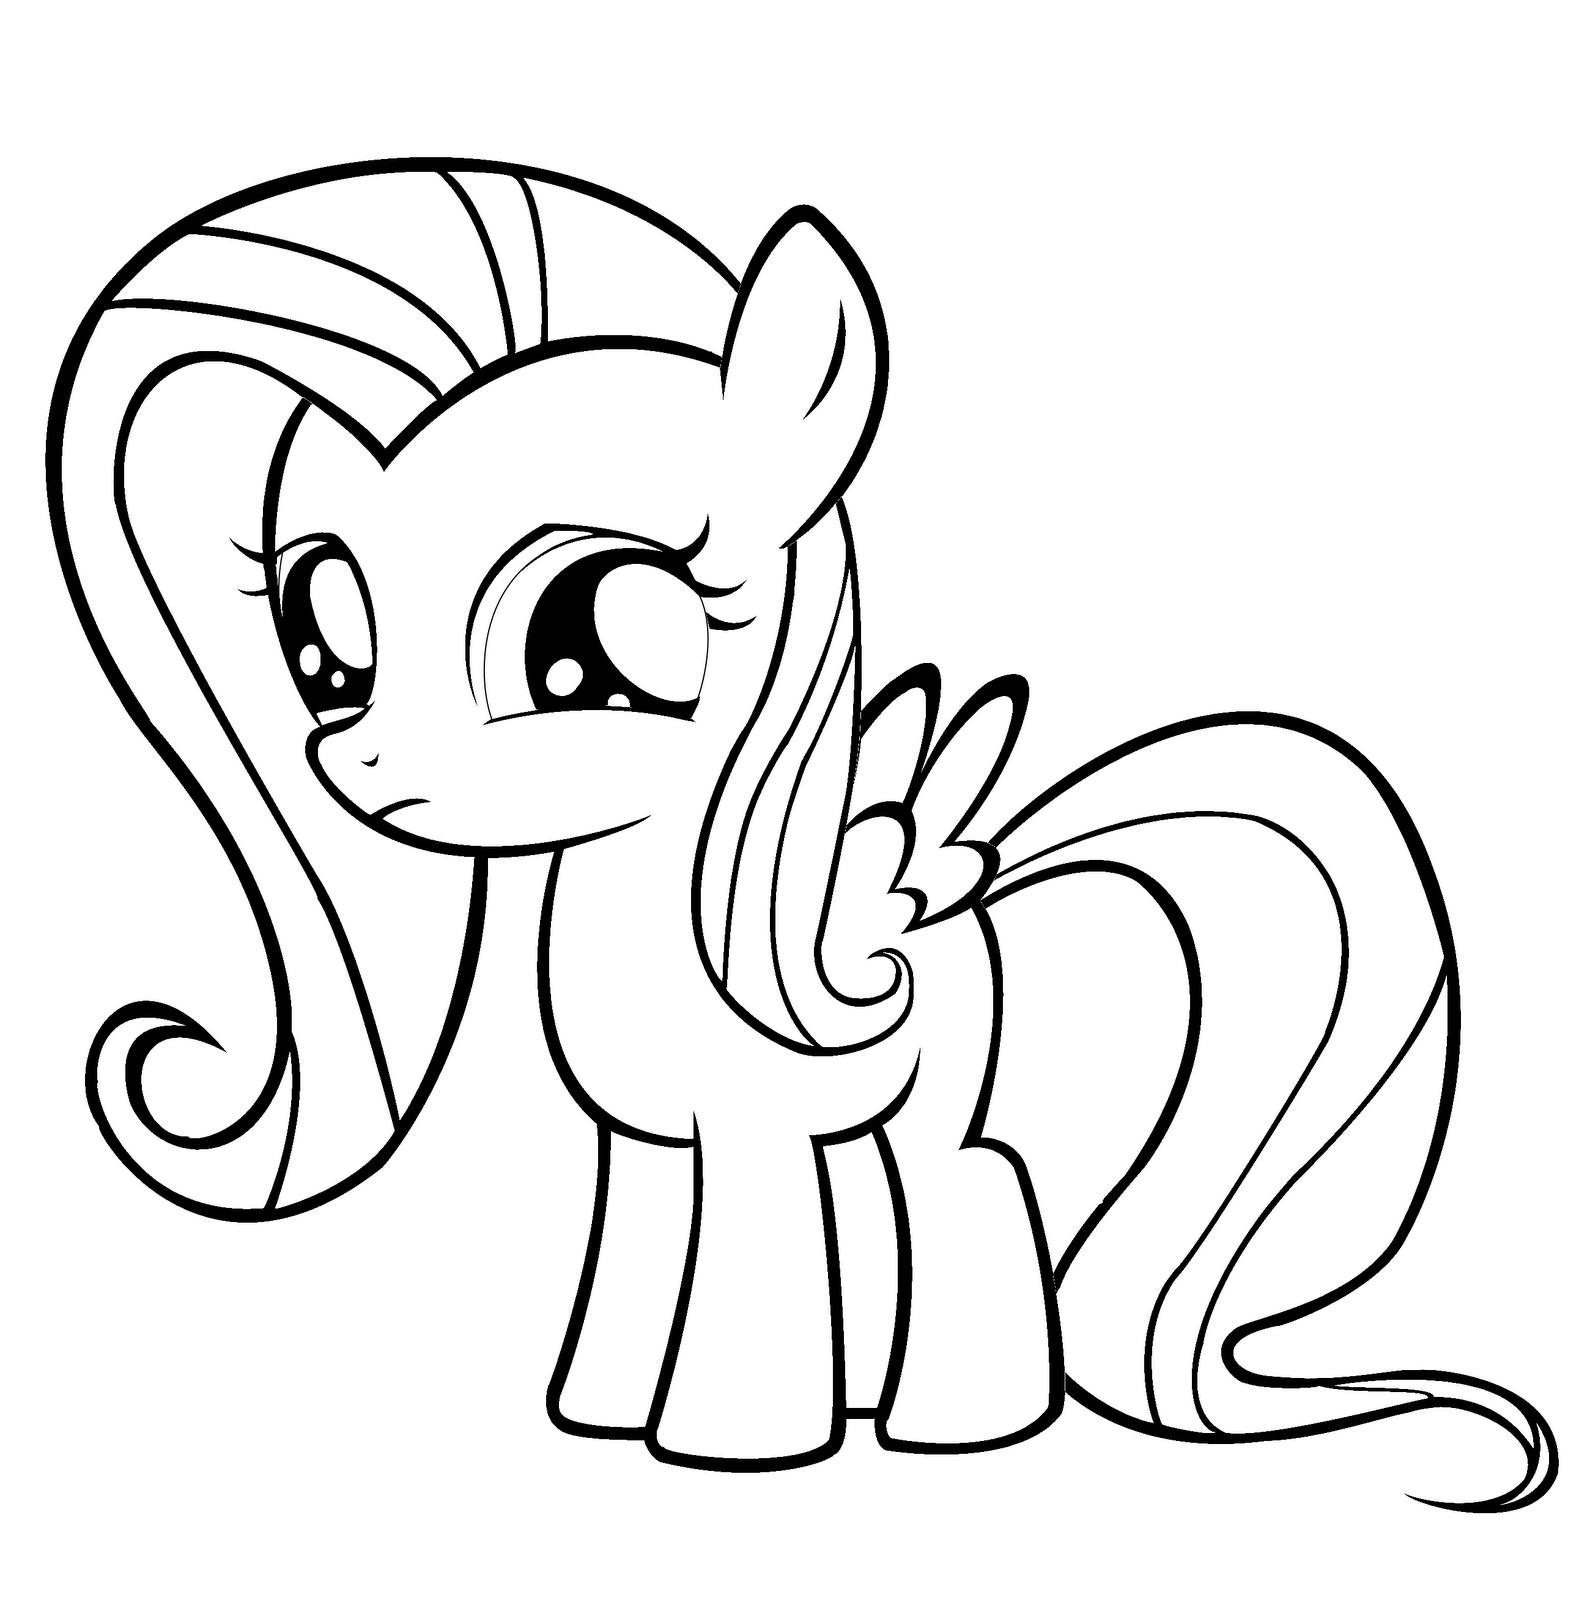 my little pony coloring pages free printable my little pony coloring pages for kids pony little pages my coloring